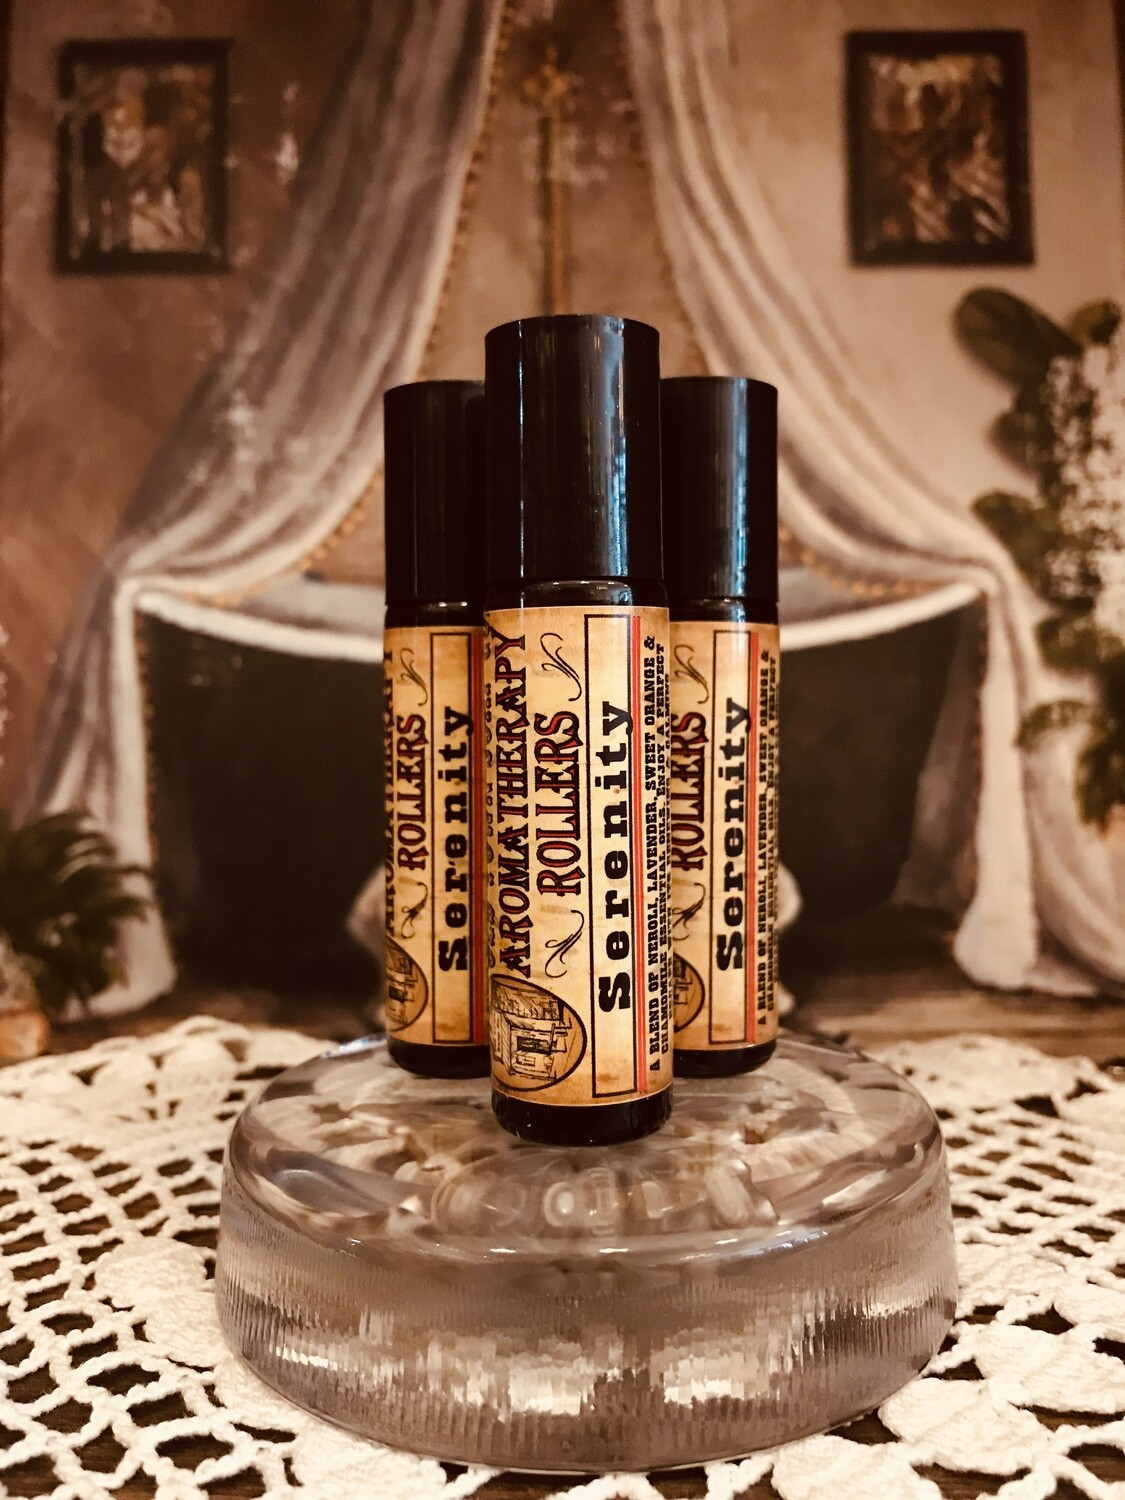 Serenity -Aromatherapy Rollers